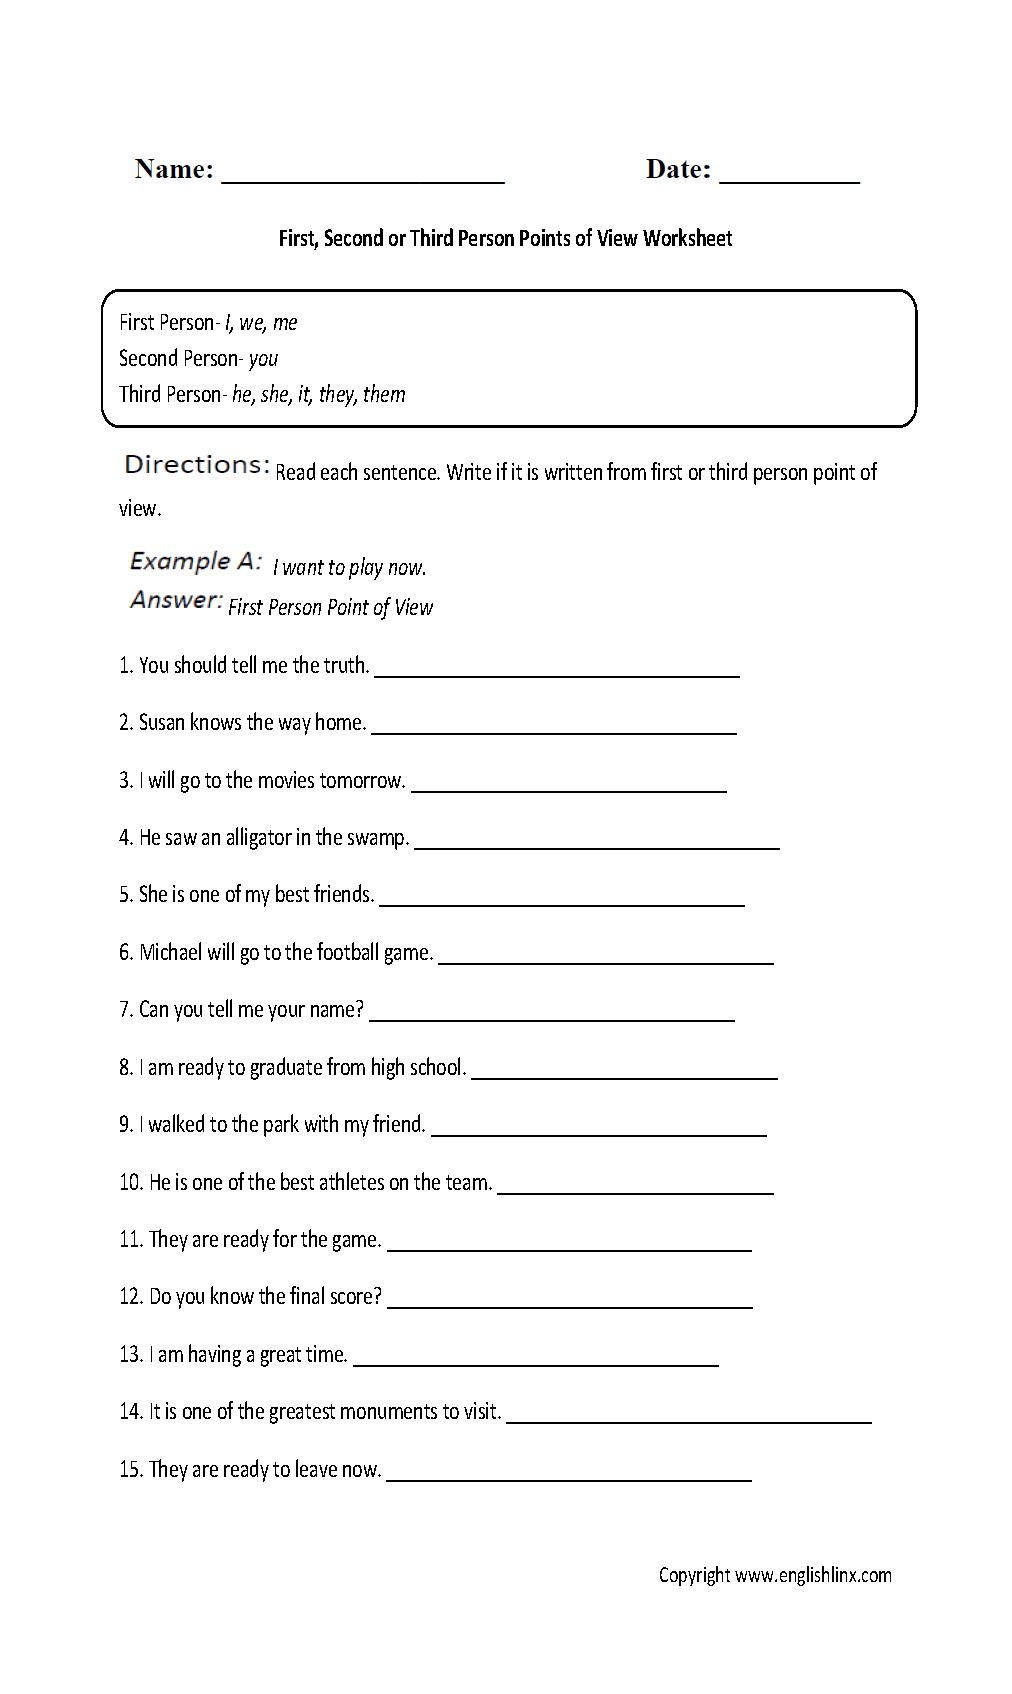 Weirdmailus  Marvellous Englishlinxcom  Point Of View Worksheets With Foxy Point Of View Worksheet With Beauteous Worksheets On Measuring Angles Also Free Excel Worksheets In Addition Grade  Geometry Worksheets And Elapsed Time Worksheets Word Problems As Well As Free Printable Simile And Metaphor Worksheets Additionally Elapsed Time Word Problems Th Grade Worksheets From Englishlinxcom With Weirdmailus  Foxy Englishlinxcom  Point Of View Worksheets With Beauteous Point Of View Worksheet And Marvellous Worksheets On Measuring Angles Also Free Excel Worksheets In Addition Grade  Geometry Worksheets From Englishlinxcom